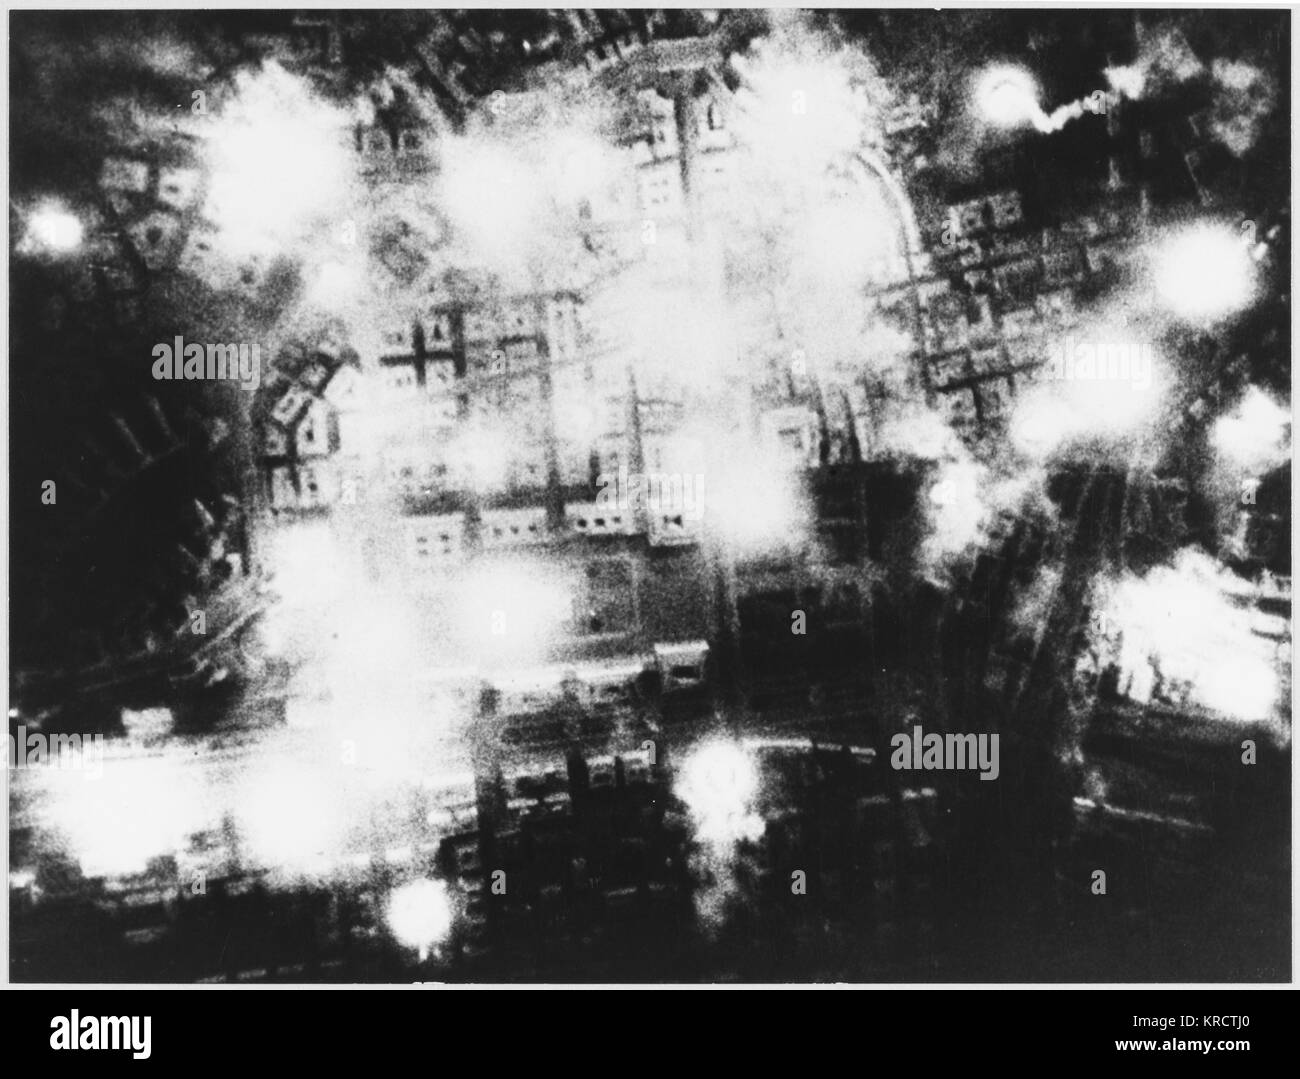 A Soviet bombers' view of Berlin. - Stock Image